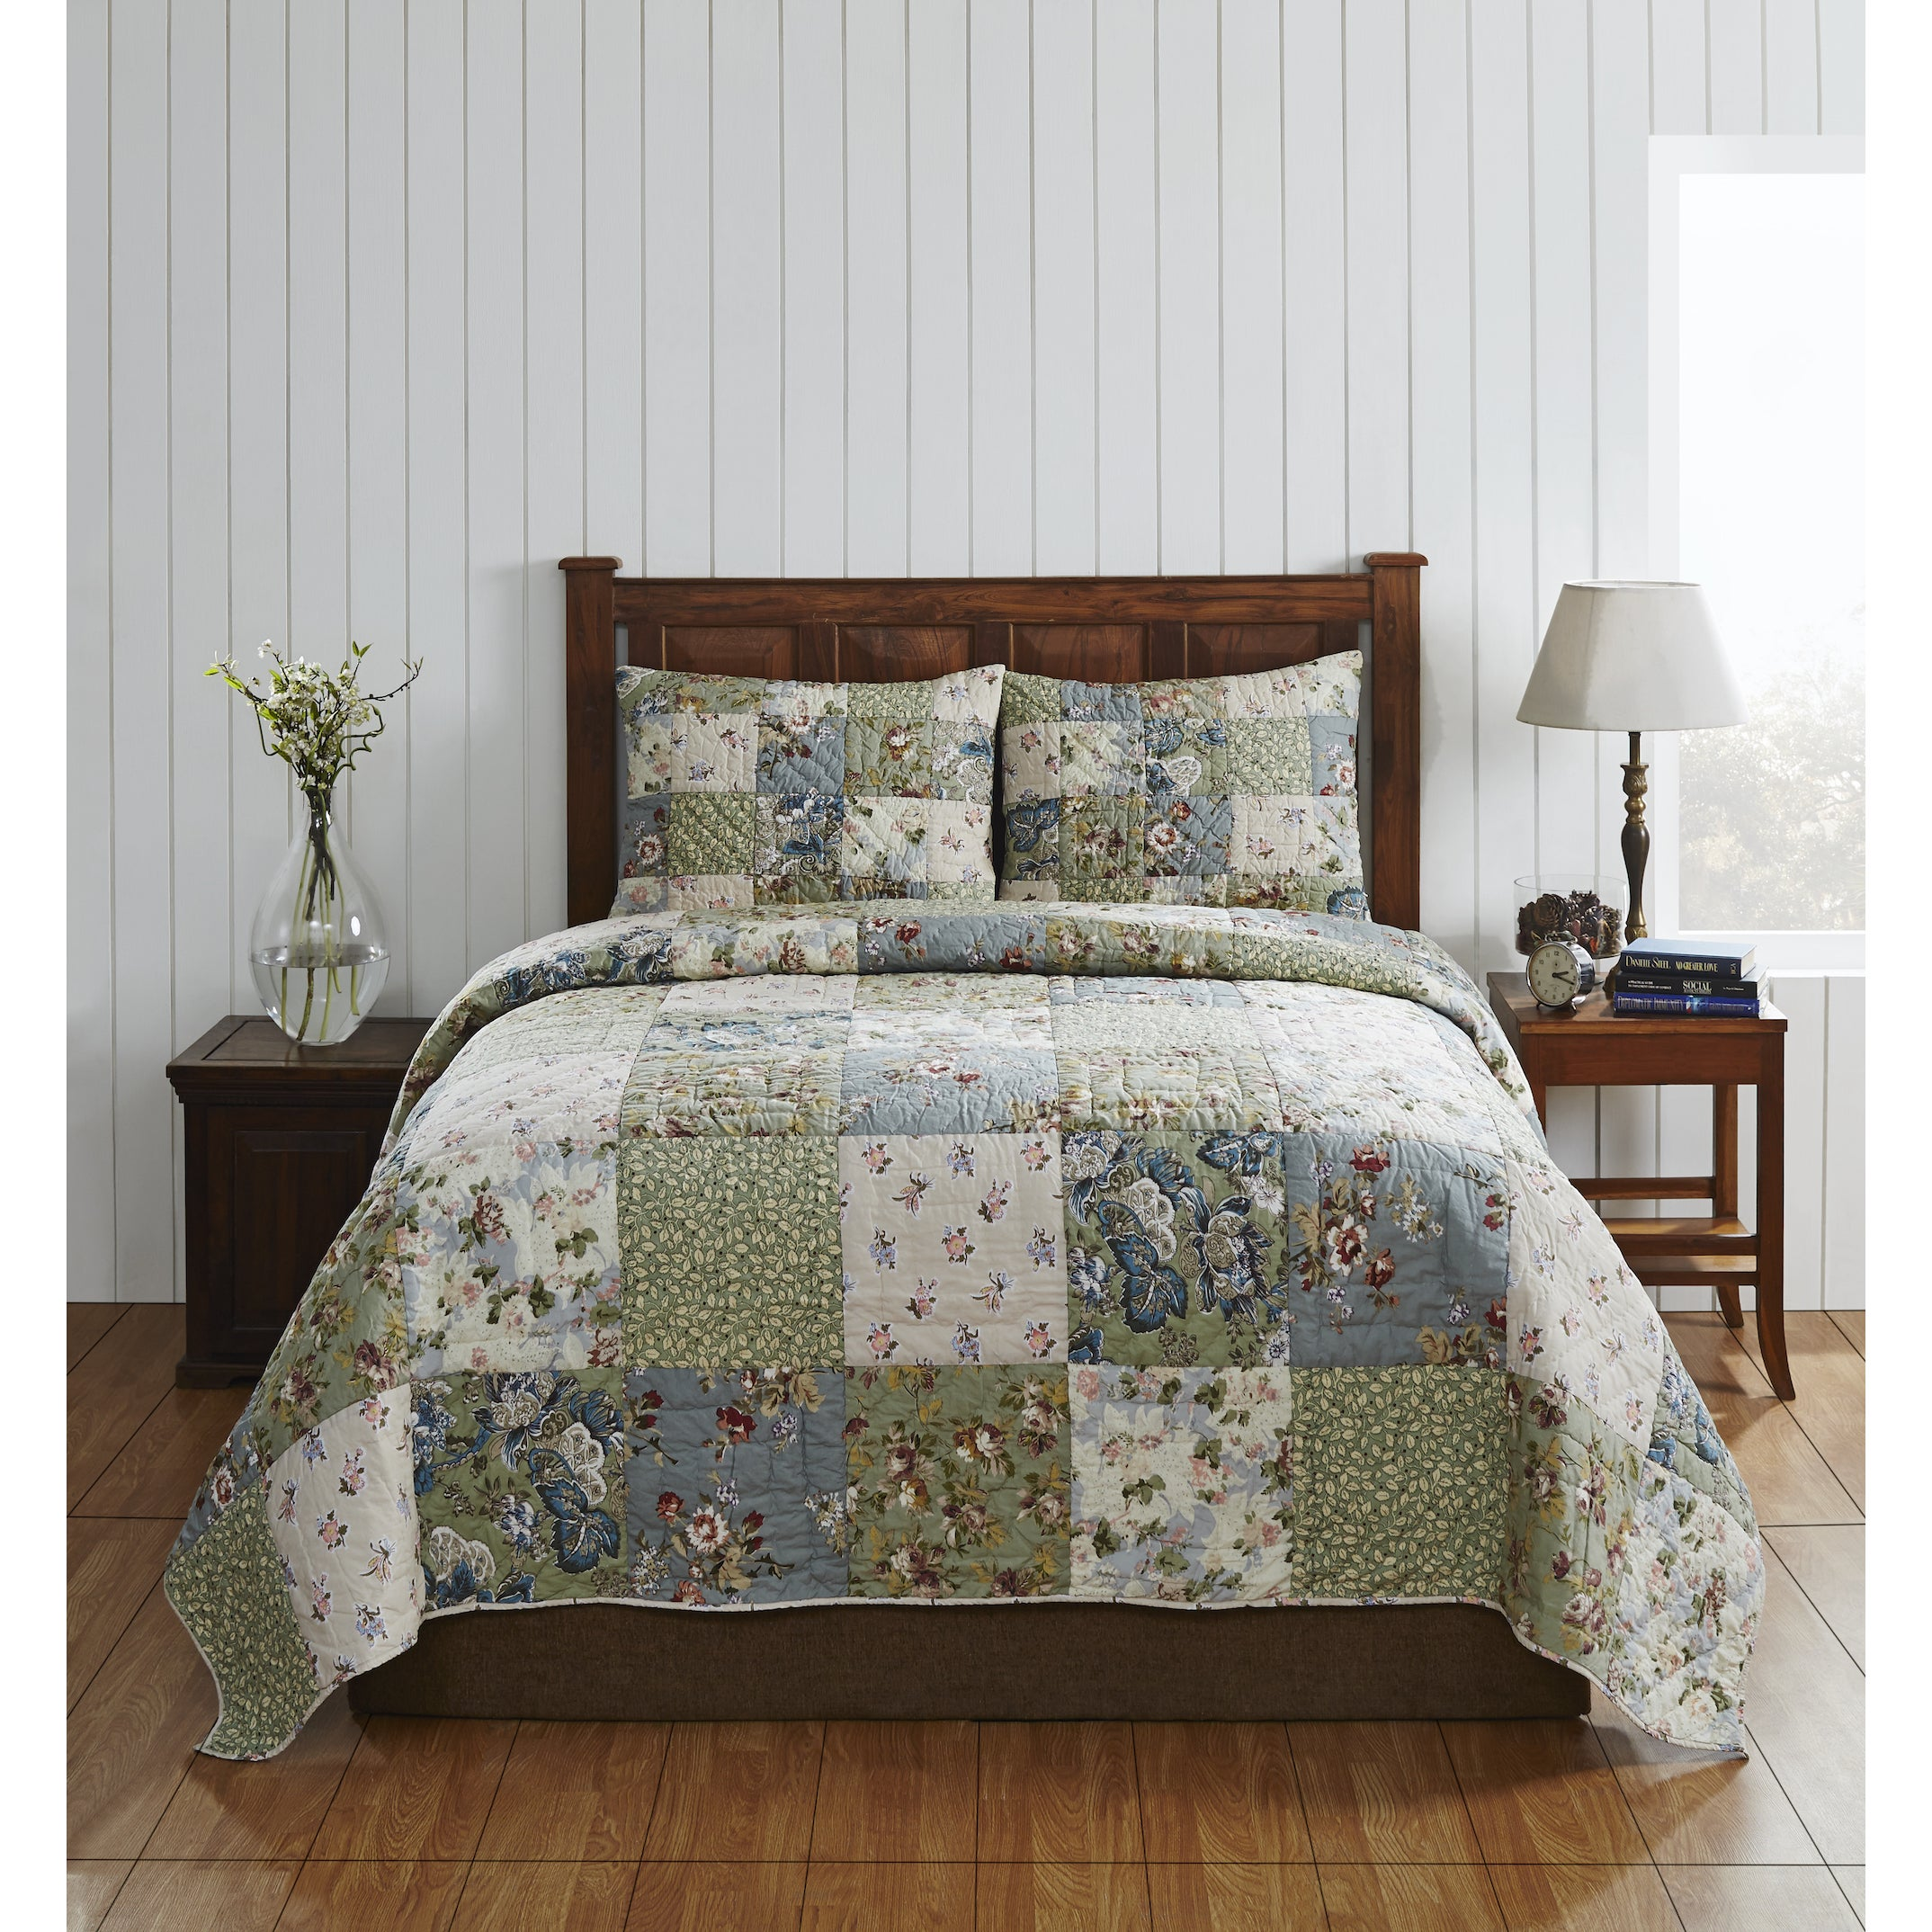 essence reyes ebay coverlet is gray quilted itm bedding set loading image home quilt